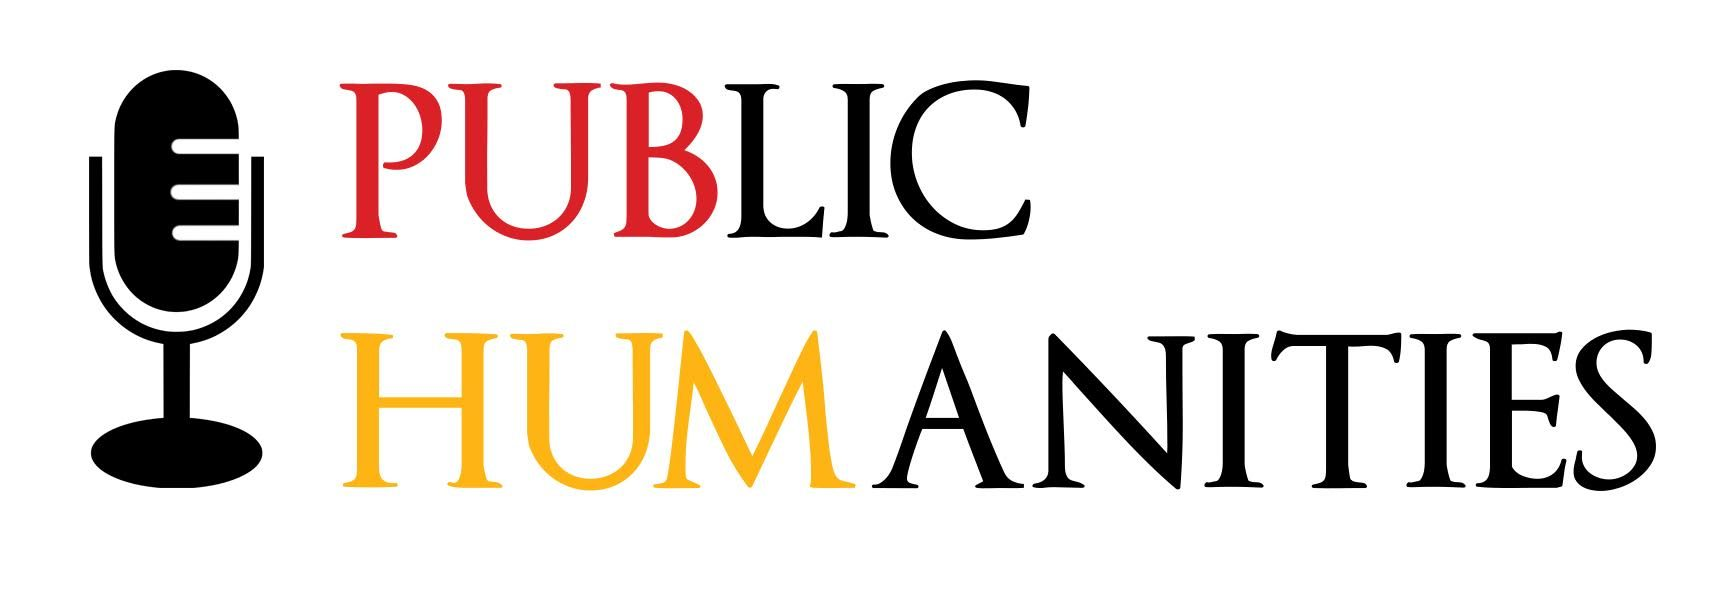 Announcing the NEW minor in Public Humanities